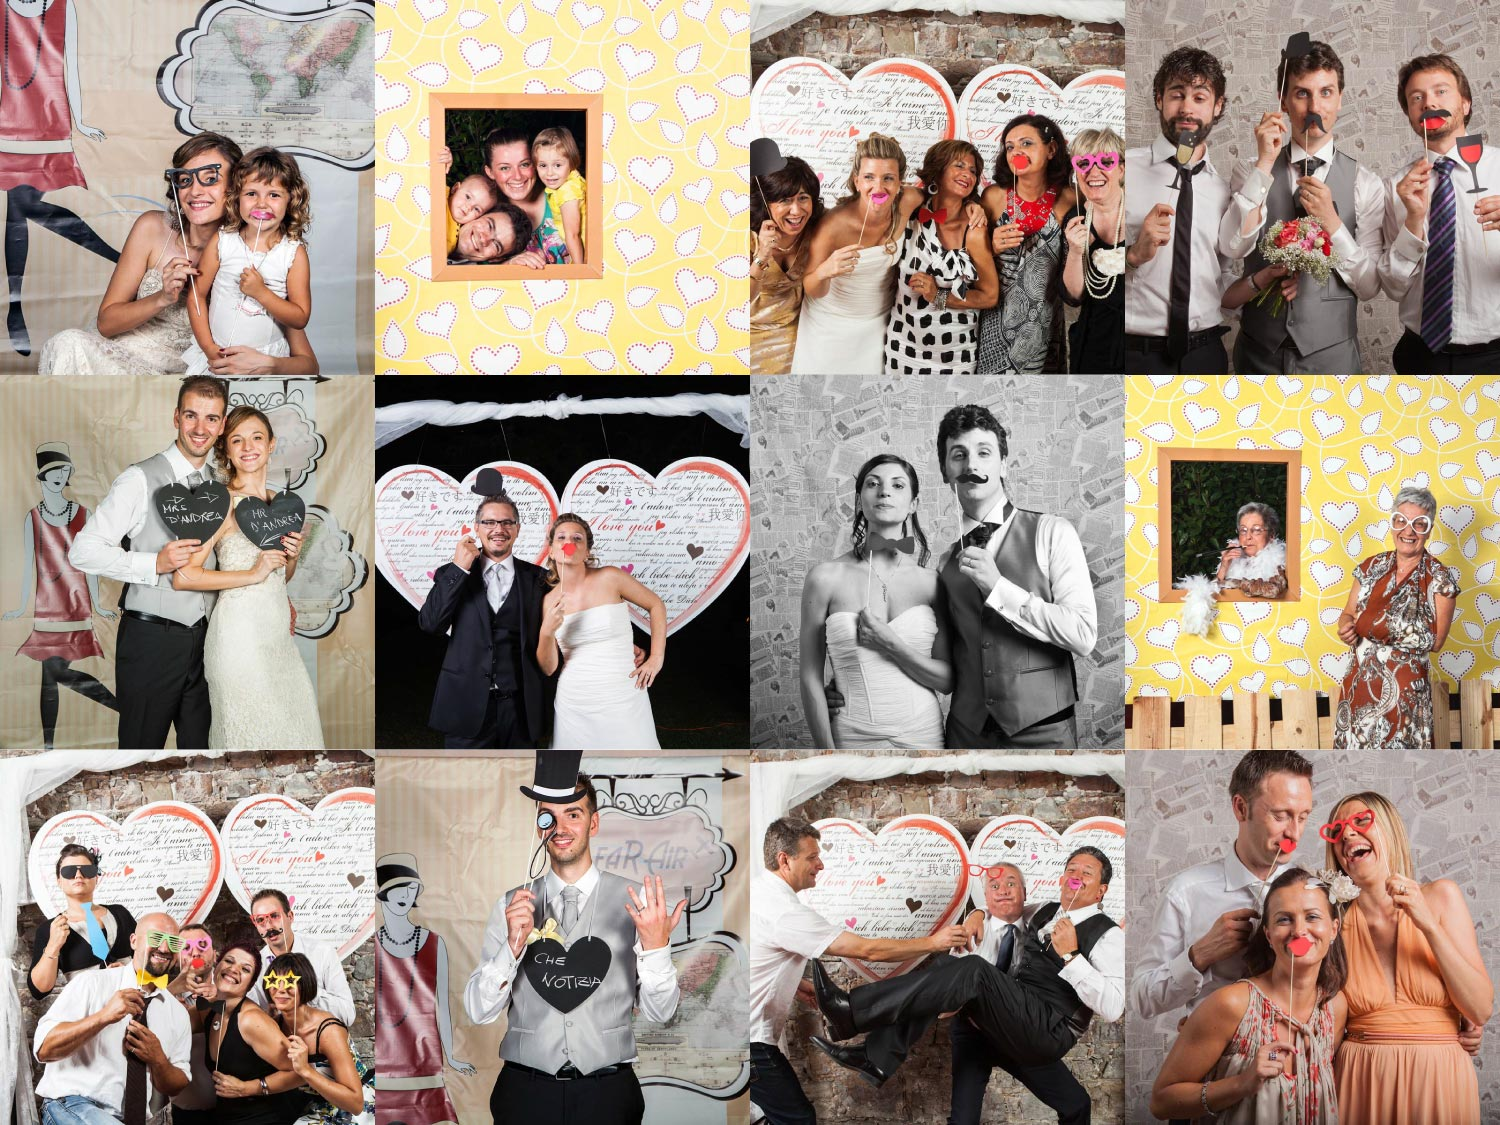 Cornici Photo Booth Fai Da Te Consigliami Il Matrimonio Il Photo Booth Originale E